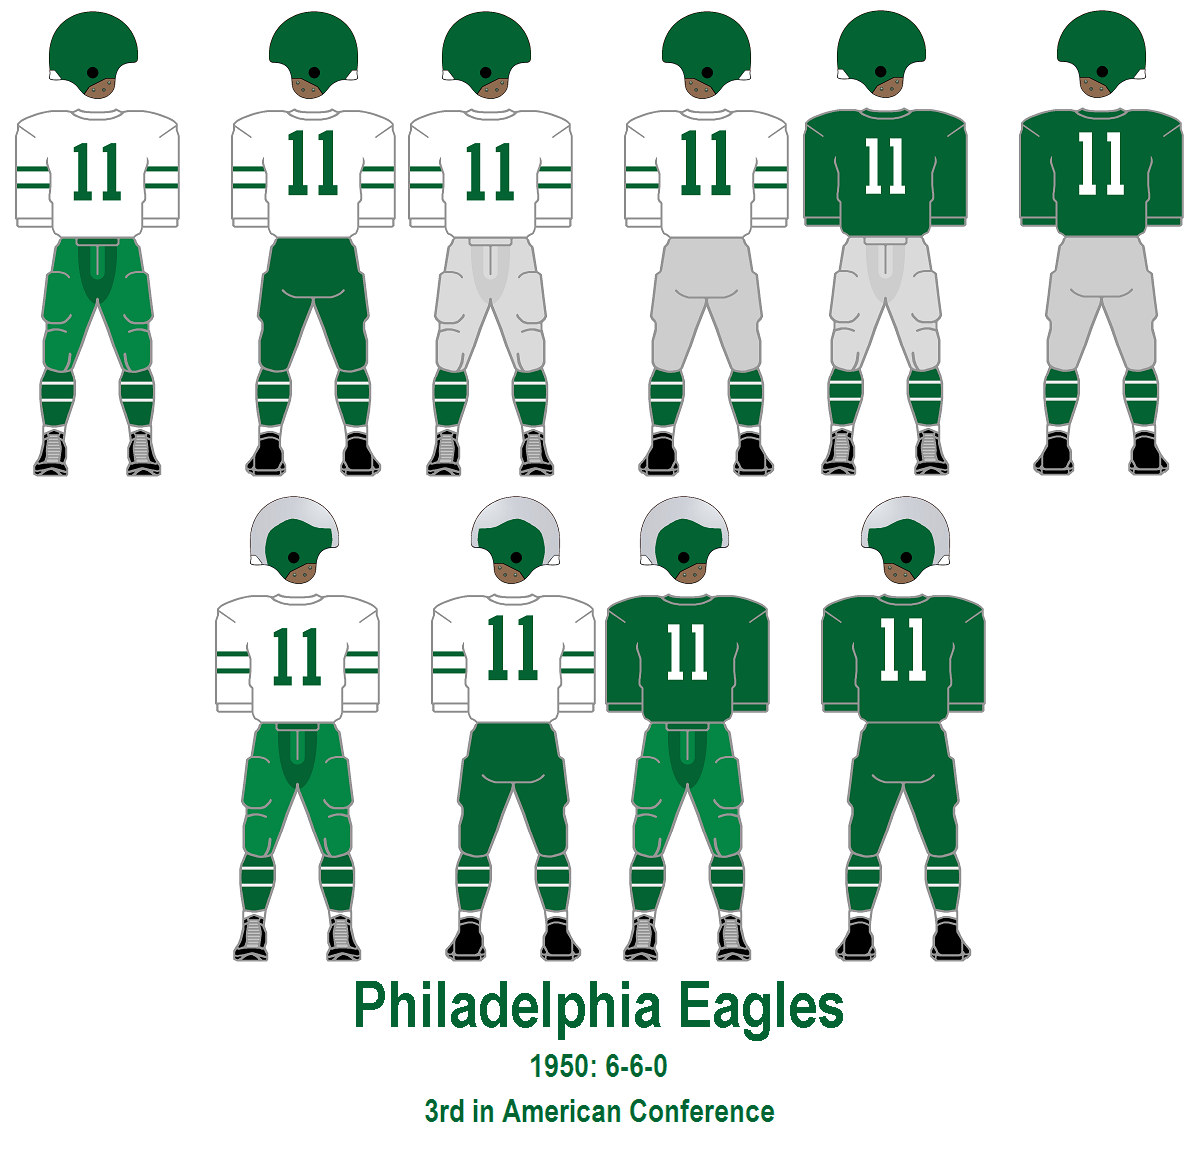 1352e44e217 1950: Green pants make a return, but the green paneled jersey is retired.  The combos: A: silver-green helmets, white jersey, green pants, B: silver- green ...